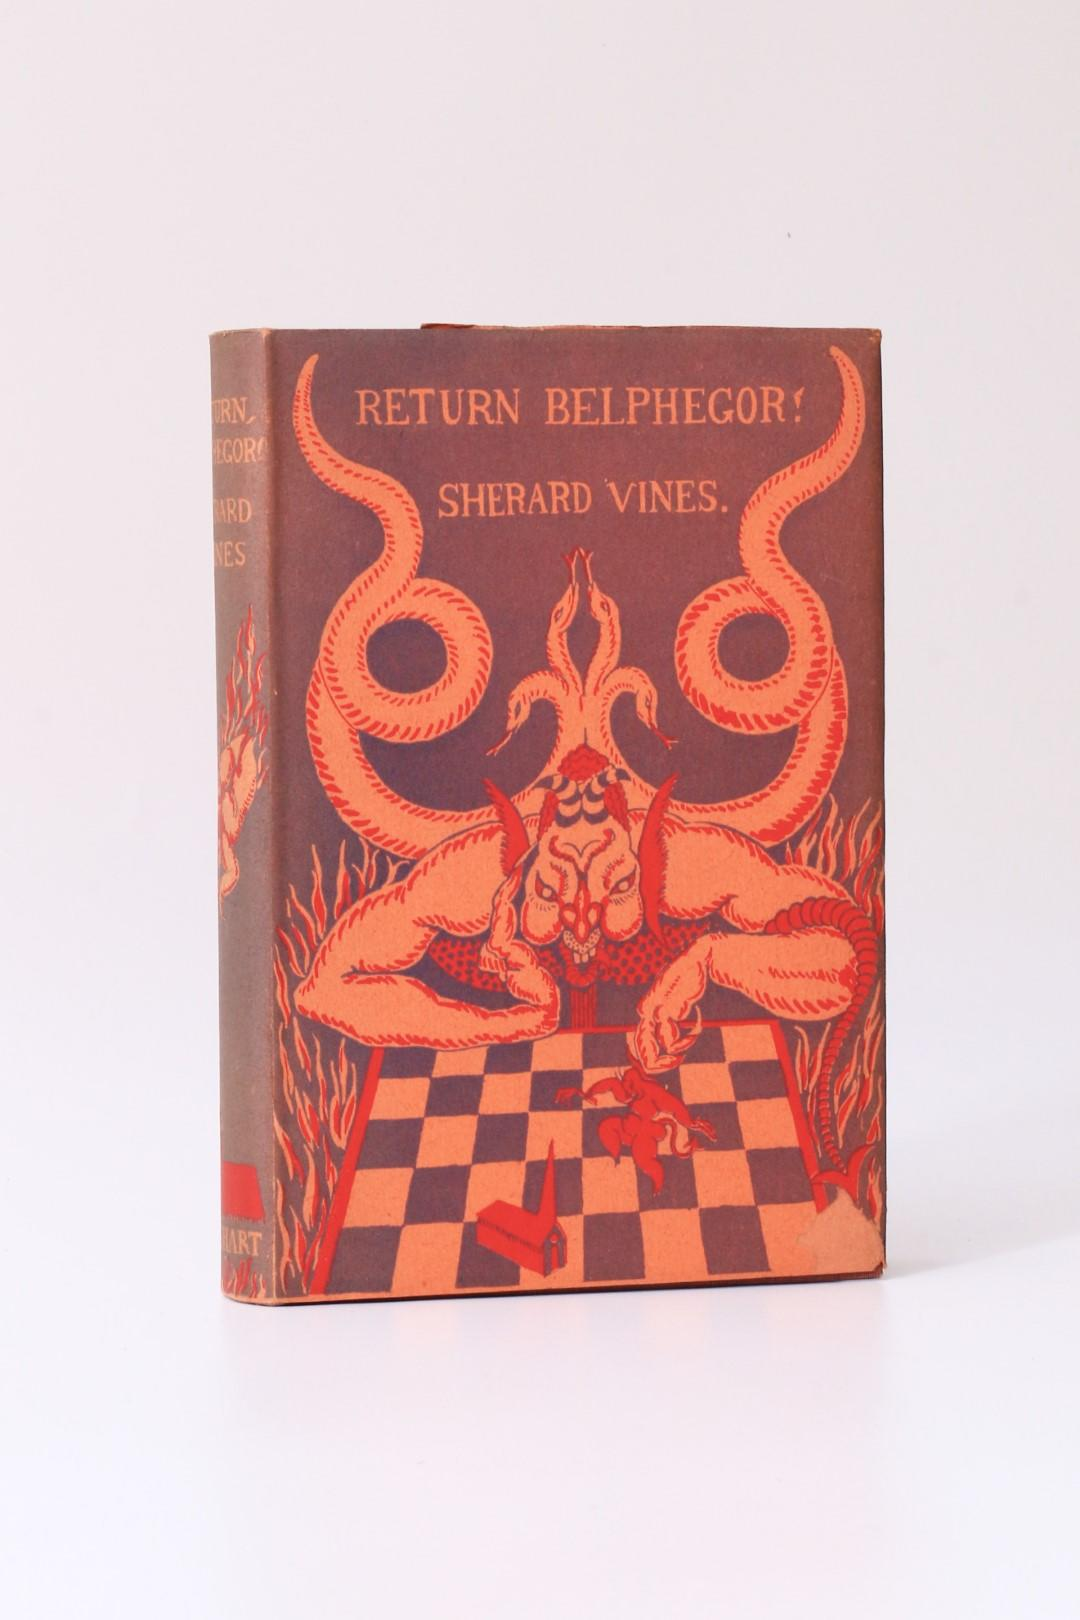 Sherard Vines - Return Belphegor! - Wishart, 1932, First Edition.